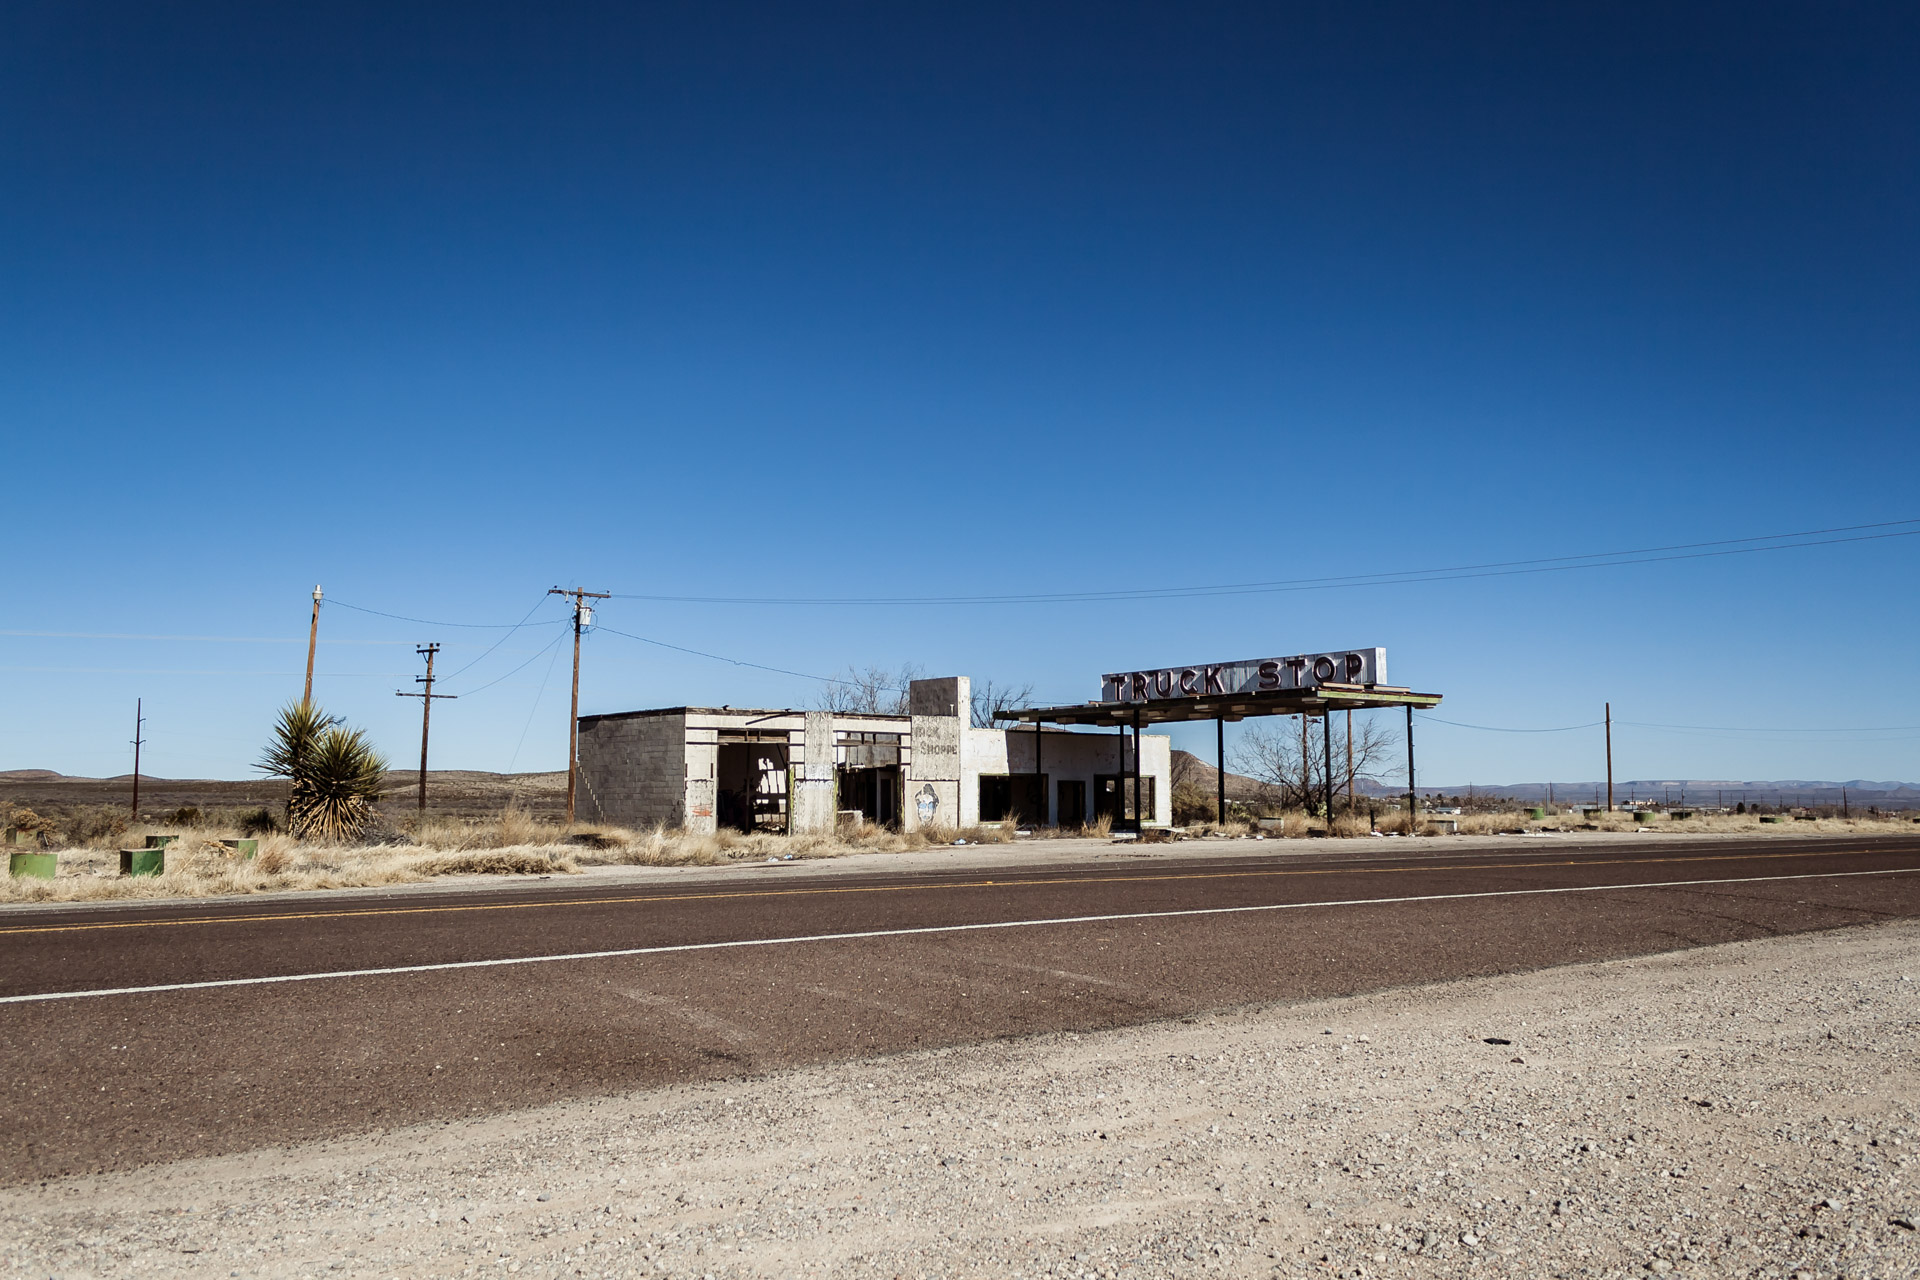 Desert Truck Stop (left far)